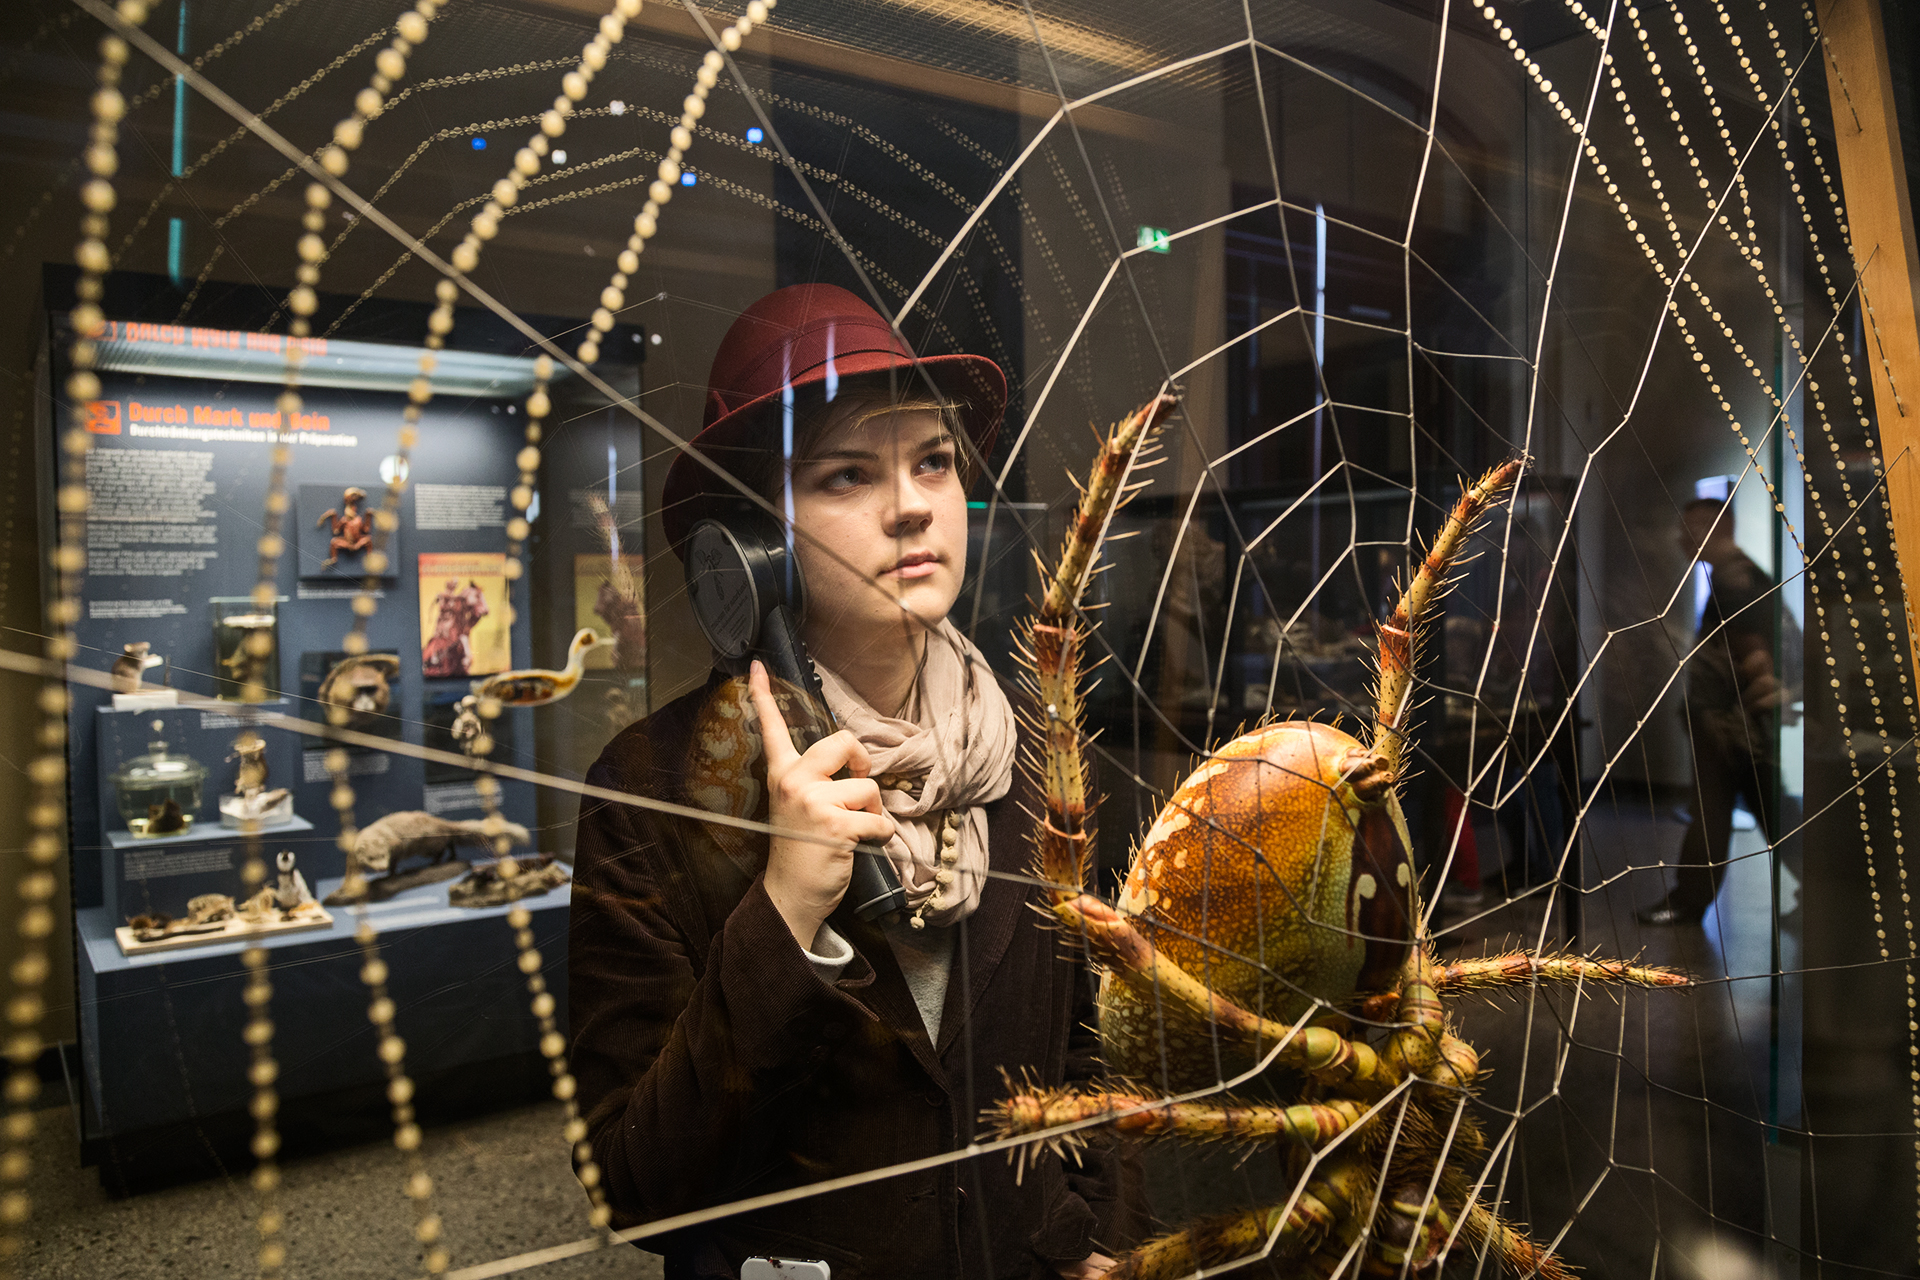 A visitor to the museum looks at an enlarged model of a spider.  Berlin, Germany.